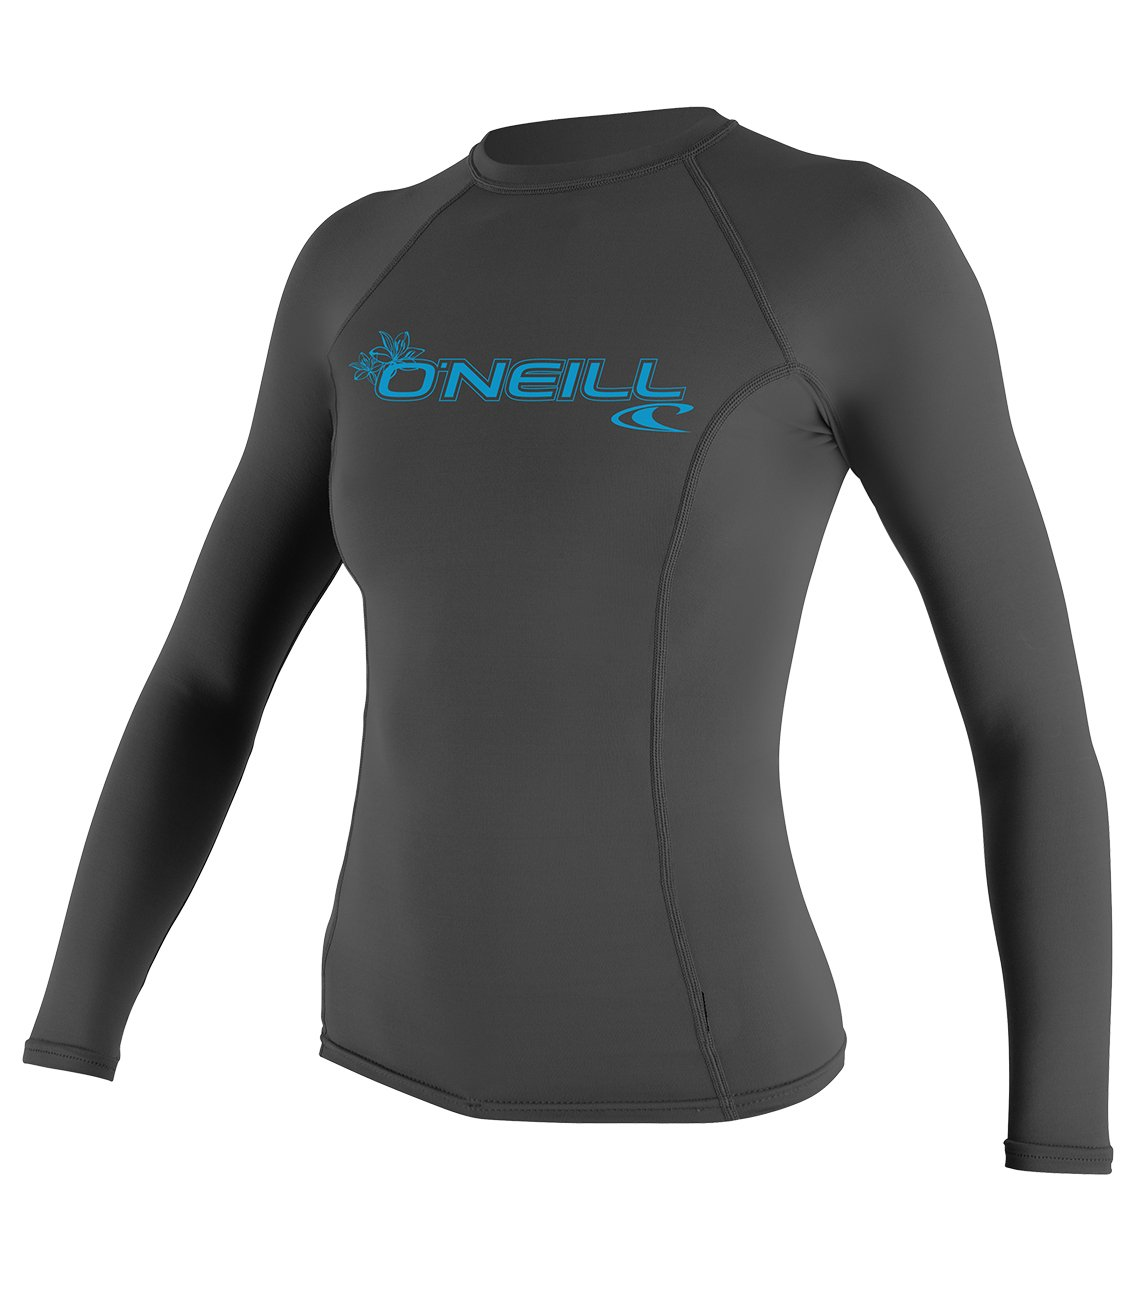 O'Neill Wetsuits Women's Basic Skins UPF 50+ Long Sleeve Rash Guard, Graphite, Large by O'Neill Wetsuits